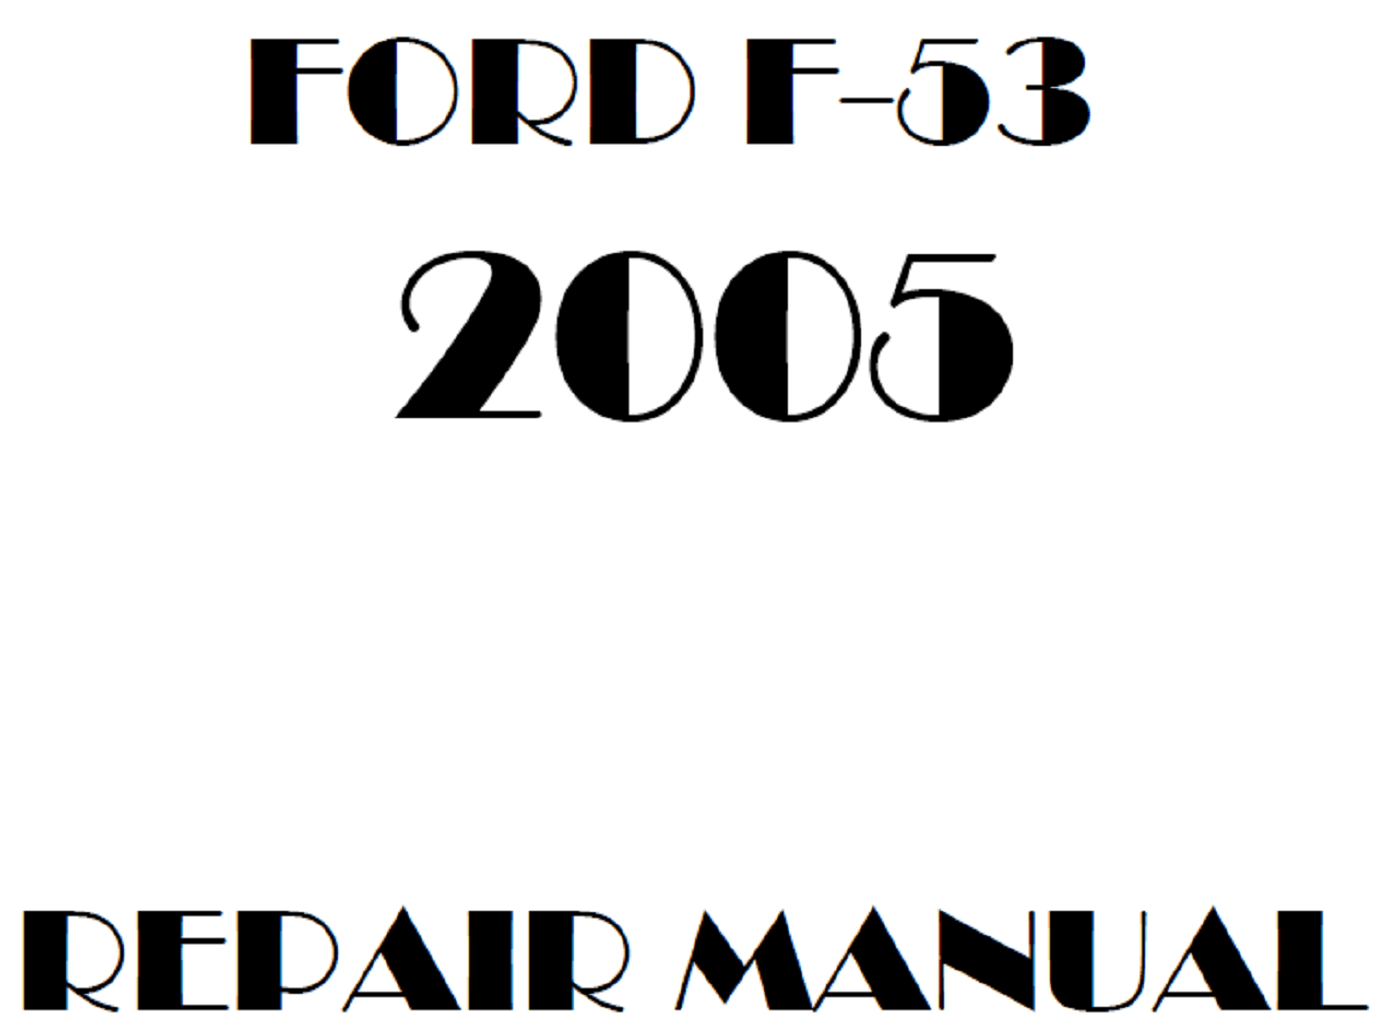 2005 Ford F53 repair manual